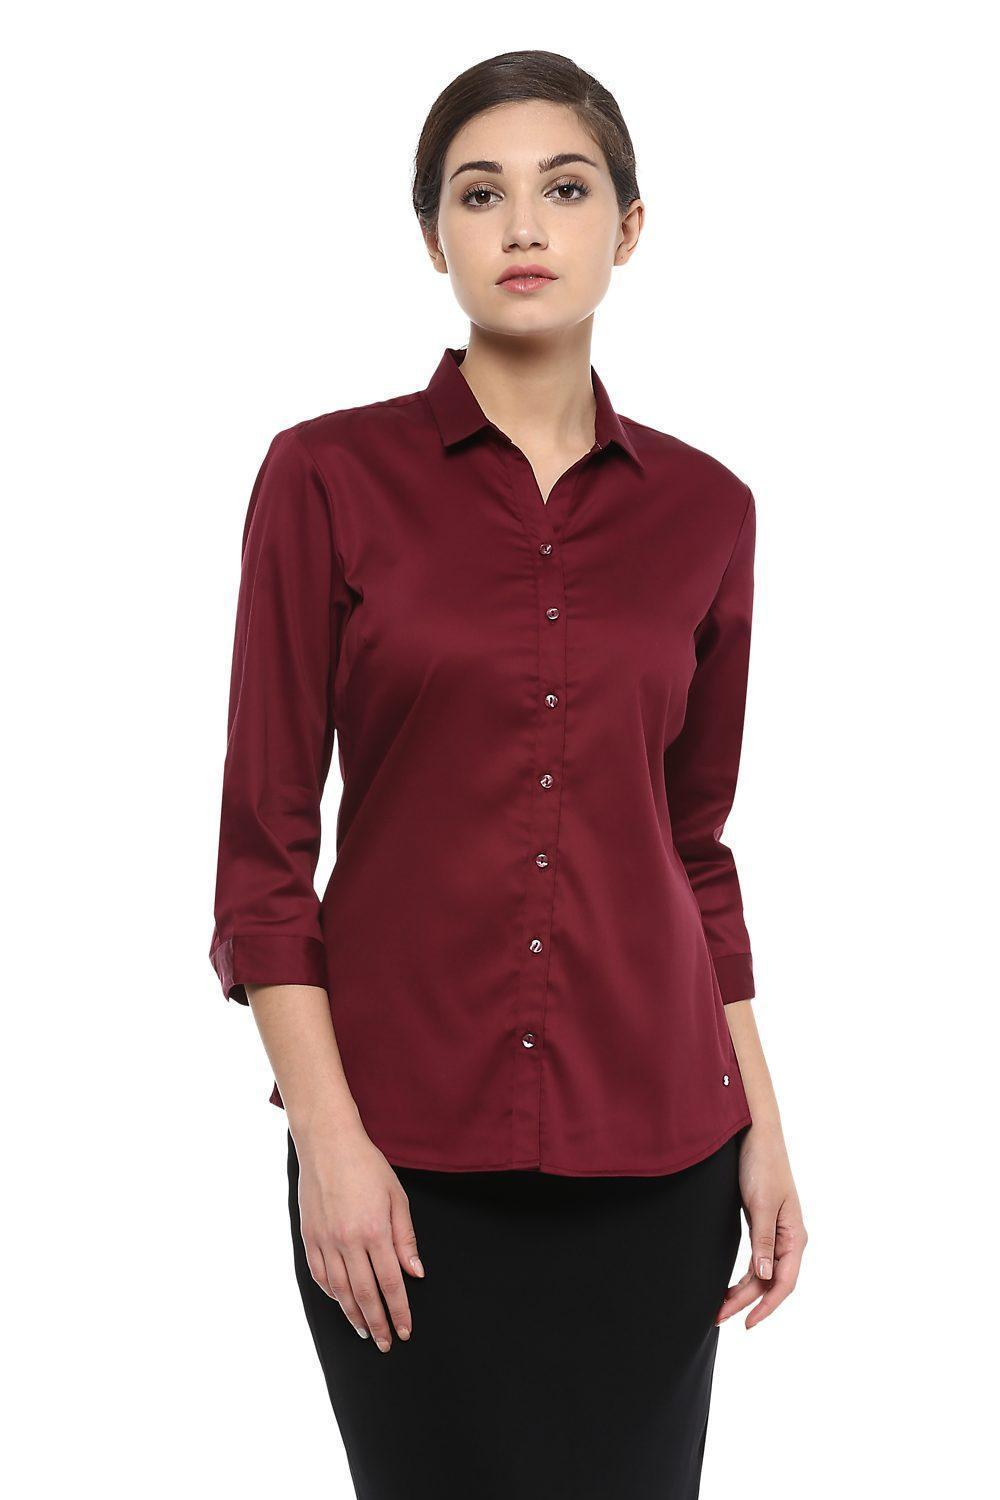 11edce93a6 Solly Shirts & Blouses, Allen Solly Maroon Shirt for Women at ...